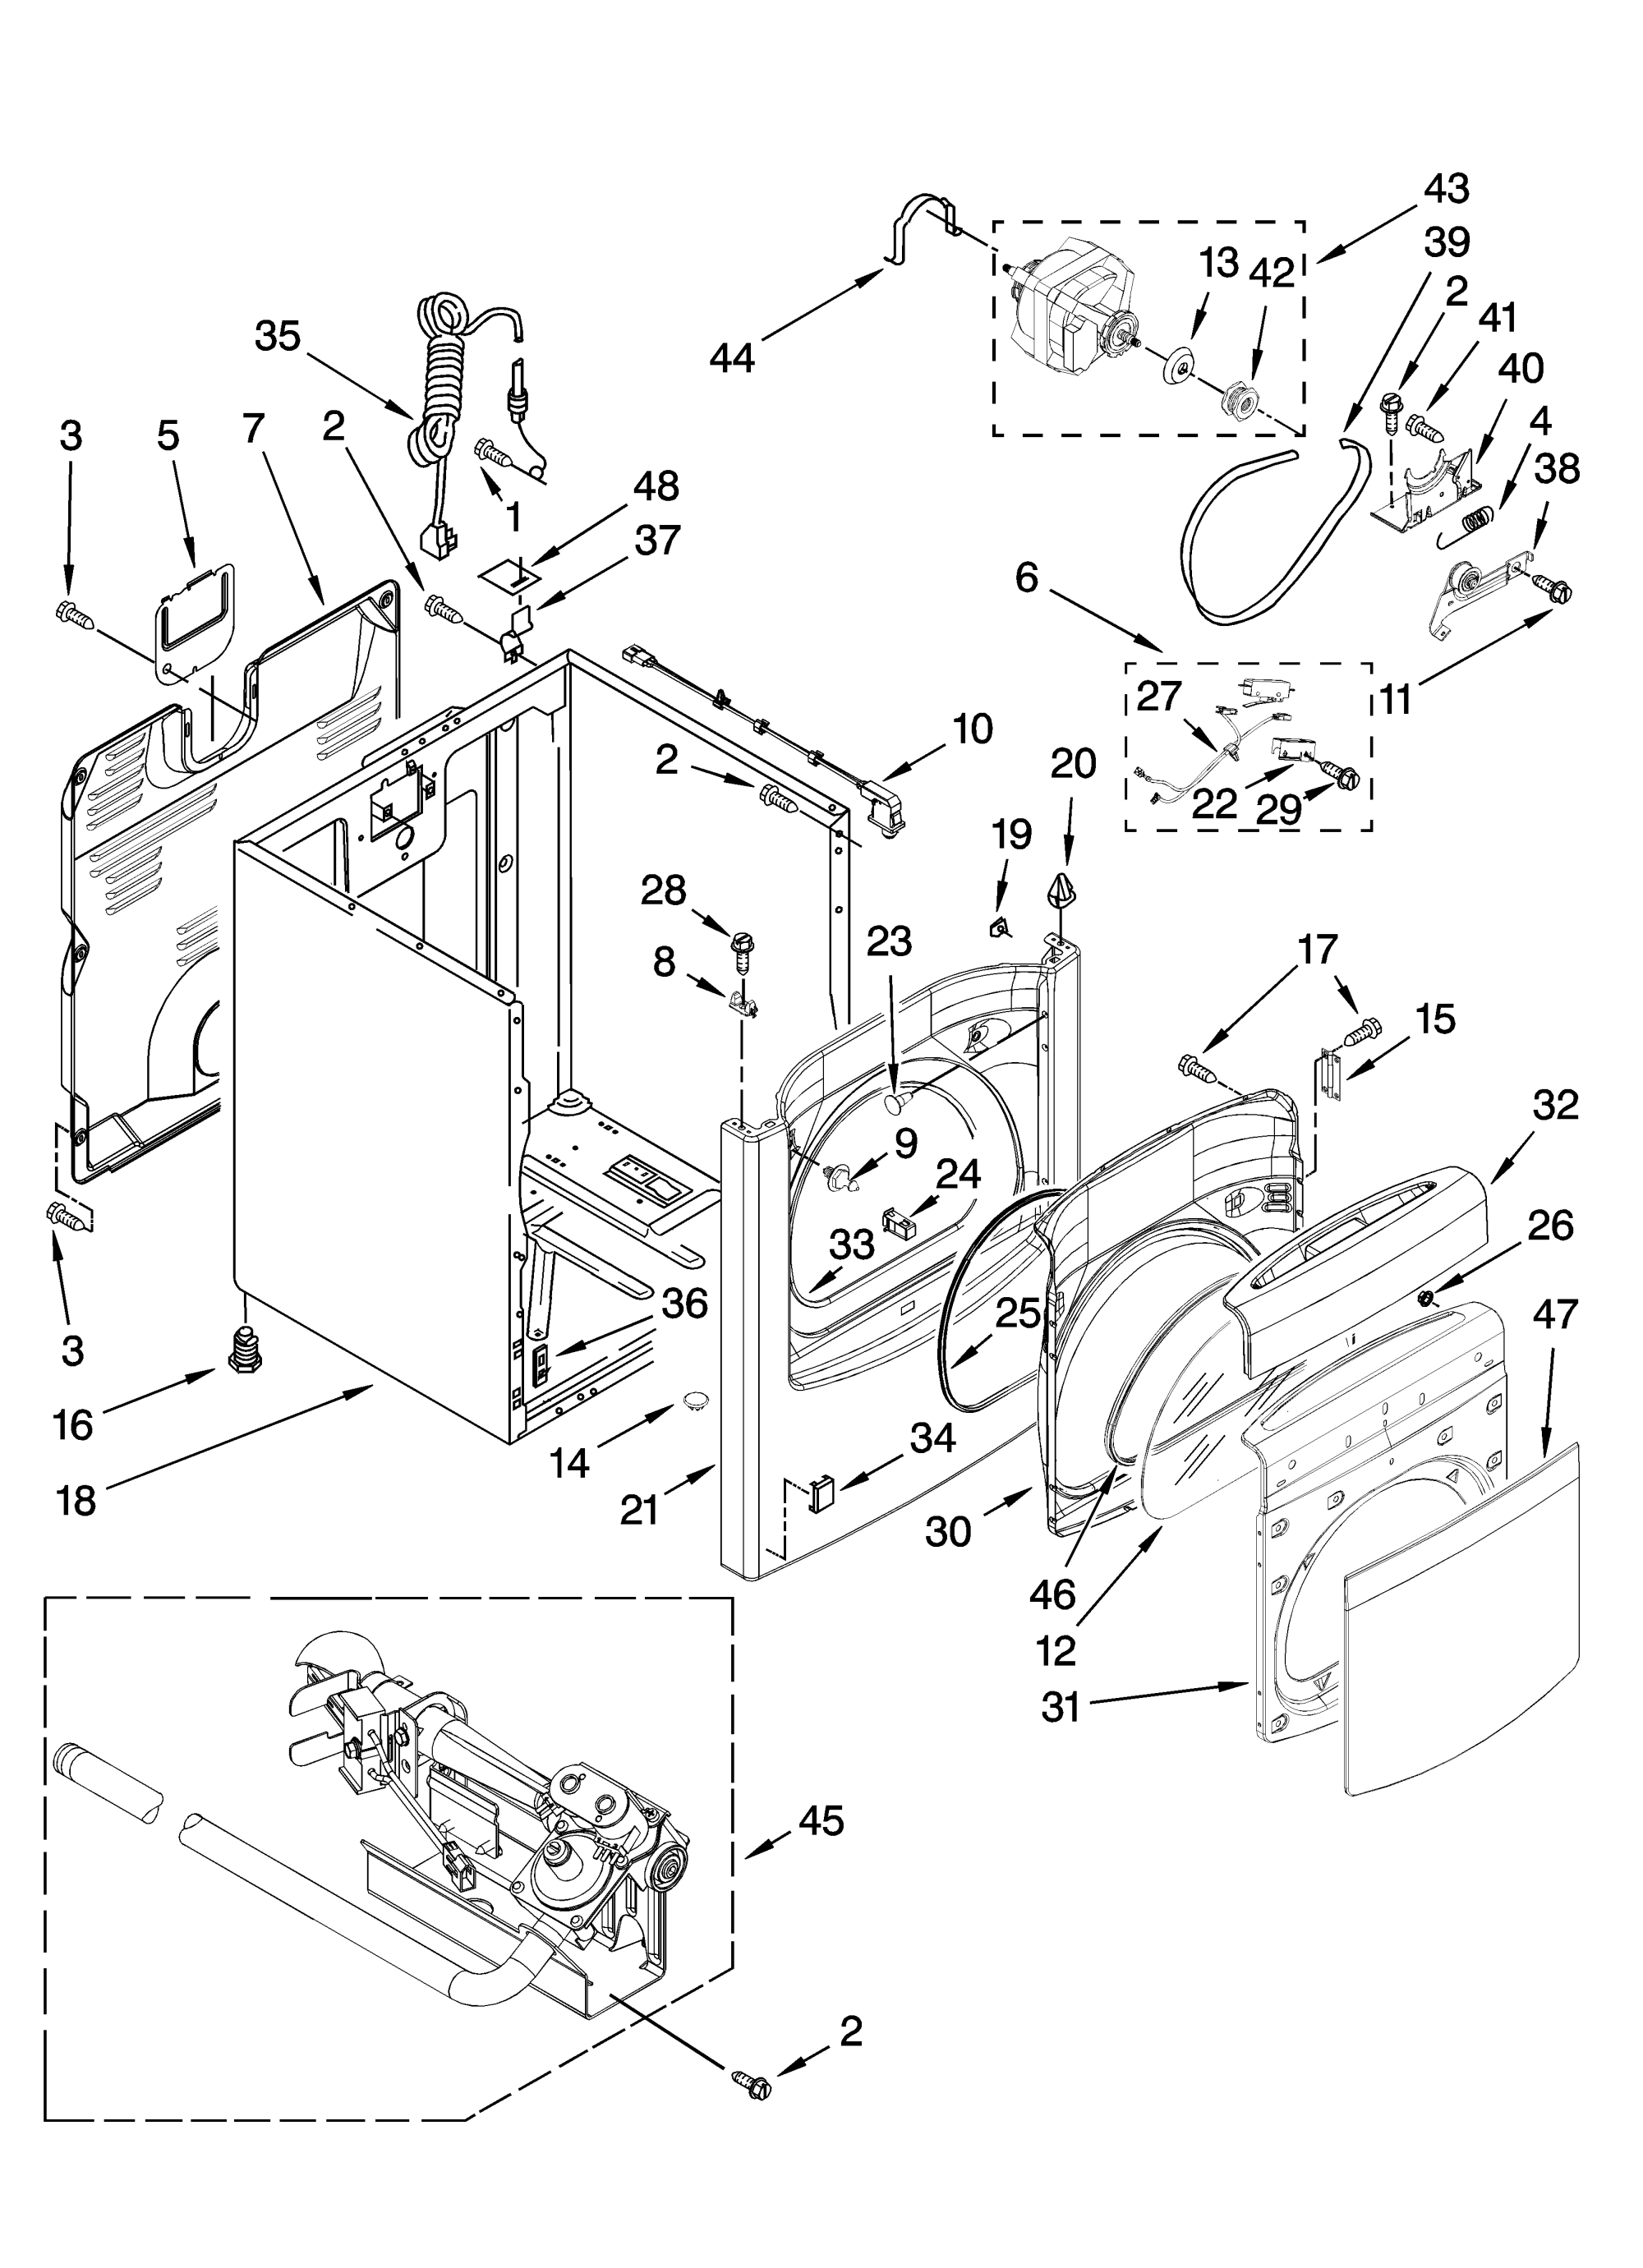 hight resolution of whirlpool wgd6400sb0 cabinet parts diagram